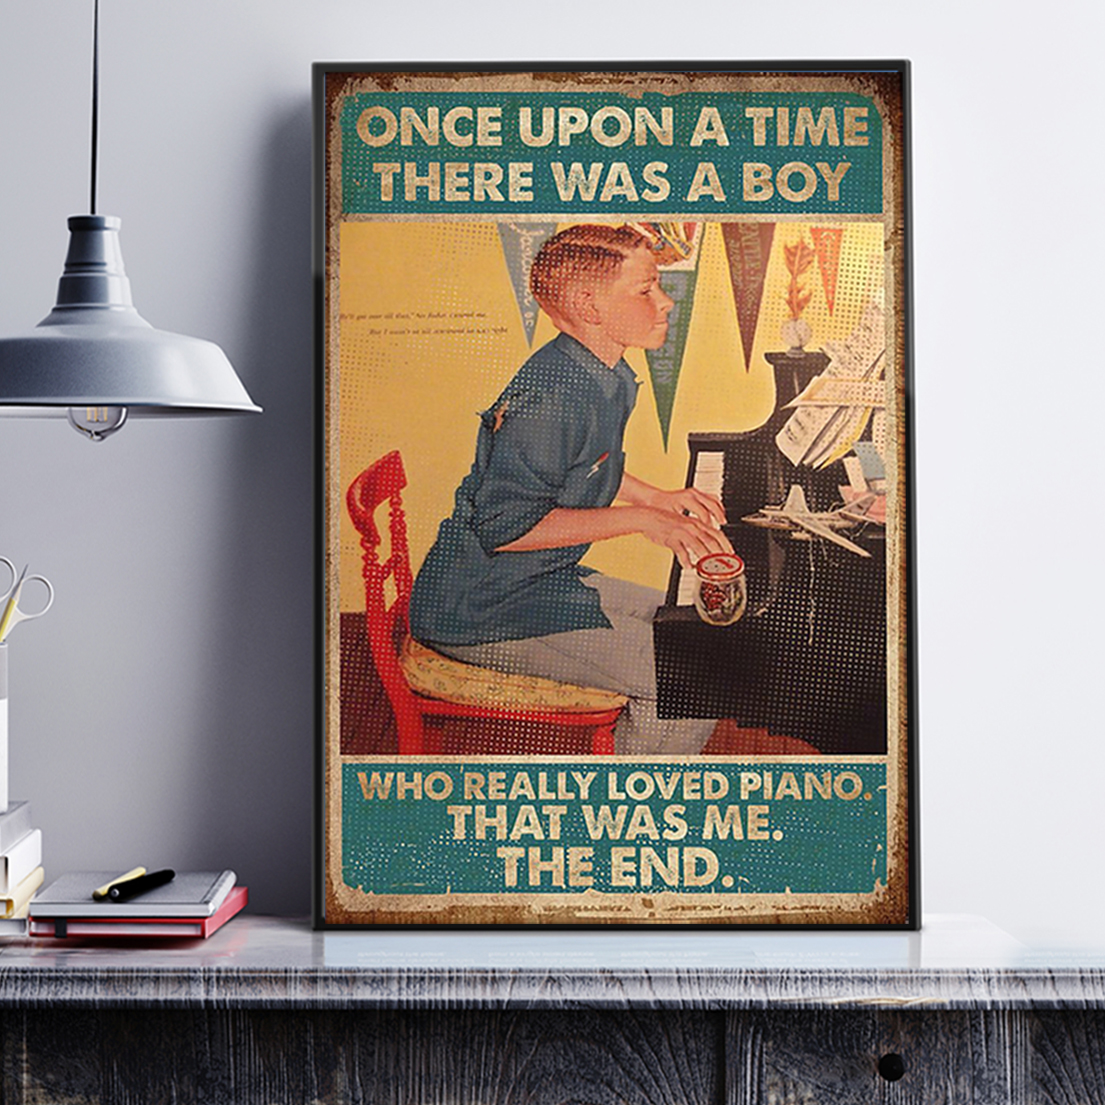 Once upon a time there was a boy who really loved piano poster A2